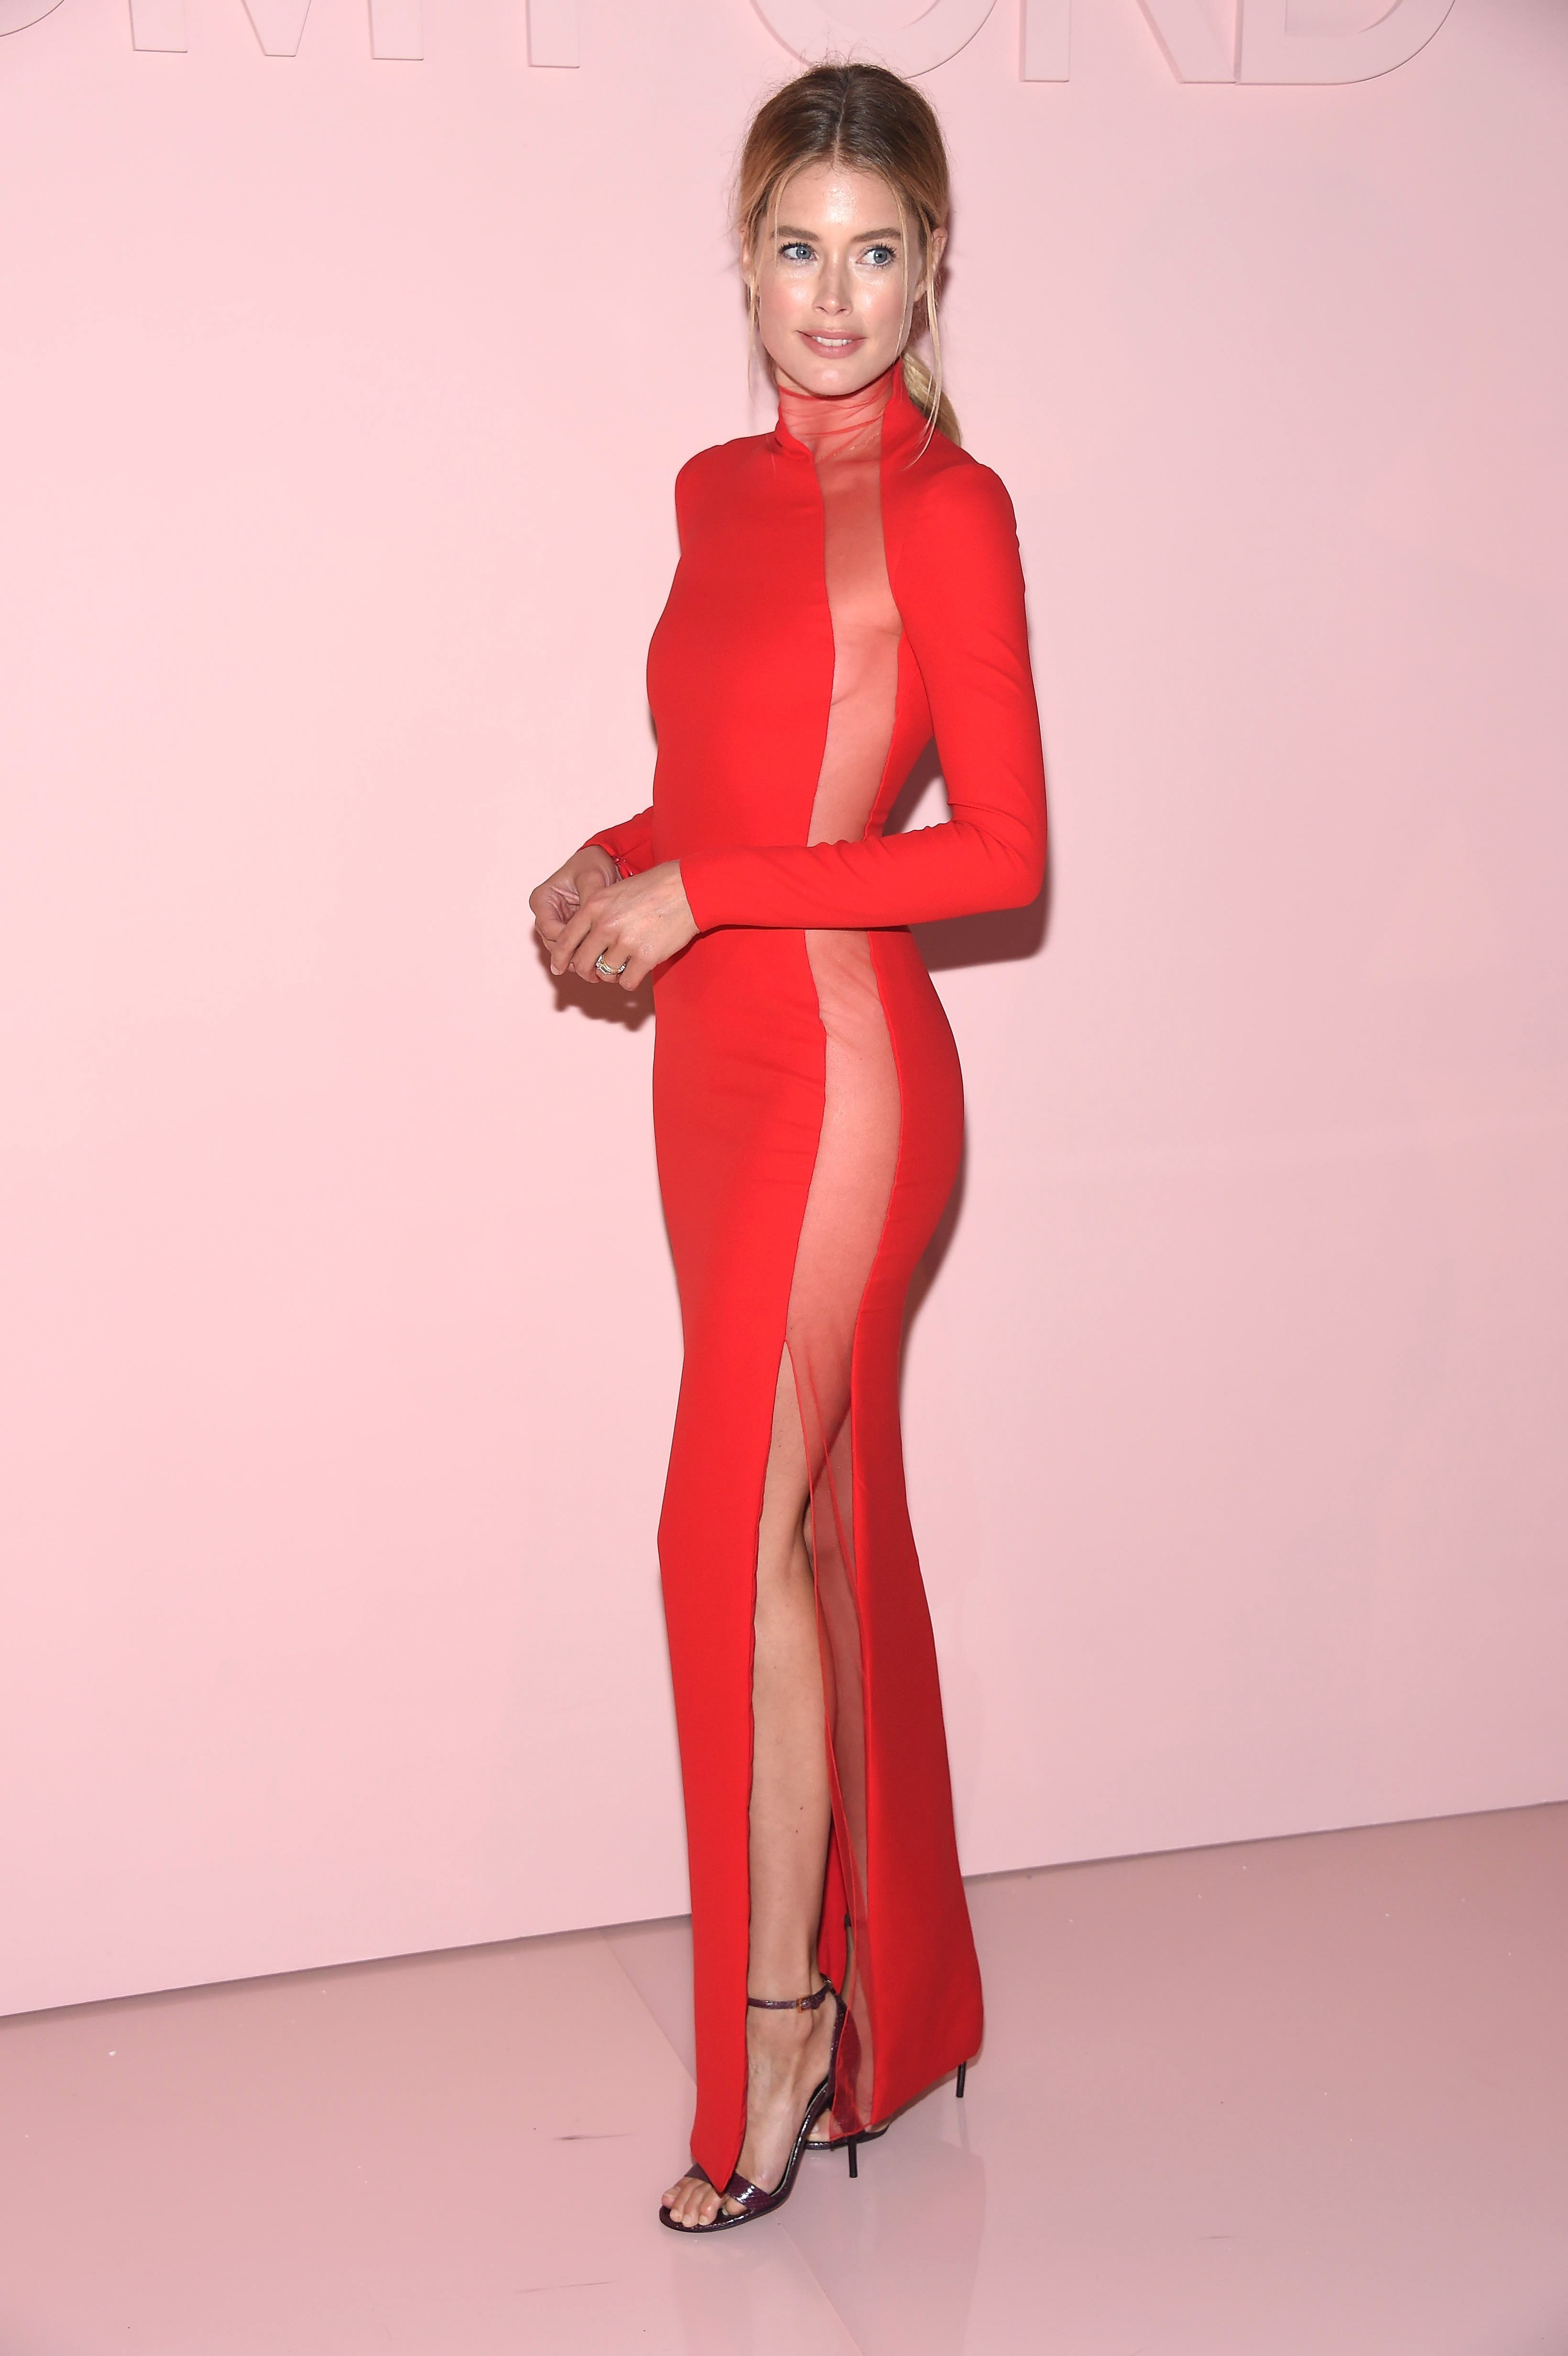 "<p>Competition to see who can wear the highest slit dress has been raging on the red carpet since <a href=""http://style.nine.com.au/2017/07/04/10/59/lip-filler-for-a-perfect-mouth-no-trout-pout-how-to-get-it-right-kylie-jenner"" target=""_blank"">Angelina Jolie</a> stepped out at the 2012 Oscars in a black Atelier Versace gown with a show of thigh that received its own Twitter account but we now have a winner.</p> <p>At the after party for Tom Ford's show, celebrating his limited edition fragrance F**king Fabulous, Dutch <a href=""http://style.nine.com.au/2016/12/01/07/46/victorias-secret-2016-paris-gigi-bella-adriana-kendall"" target=""_blank"">Victoria's Secret</a> supermodel Doutzen Kroes wore a fitted red gown with the illusion of a slit from toe to top thanks to some serious craftsmanship and a sheer panel.</p> <p>""When it fits like a glove... @tomford,"" the 32-year-old posted to her Instagram account.</p> <p>Kroes received stiff competition from US model Karlie Kloss who will return to the Victoria's Secret runway in November, with Taylor Swift's squad member wearing a relatively conservative black slit dress with a choker, giving off Tom Ford at Gucci vibes.</p> <p>The only Australian to make an impact was former Miss World Australia (2012) in a fitted blush Tom Ford dress (no slit).</p> <p>""Thank you for having me at your show @TomFord & dressing me in this beautiful and classic vintage dress. Goodnight NYC,"" Kahawaty posted.<br> <br> </p>"